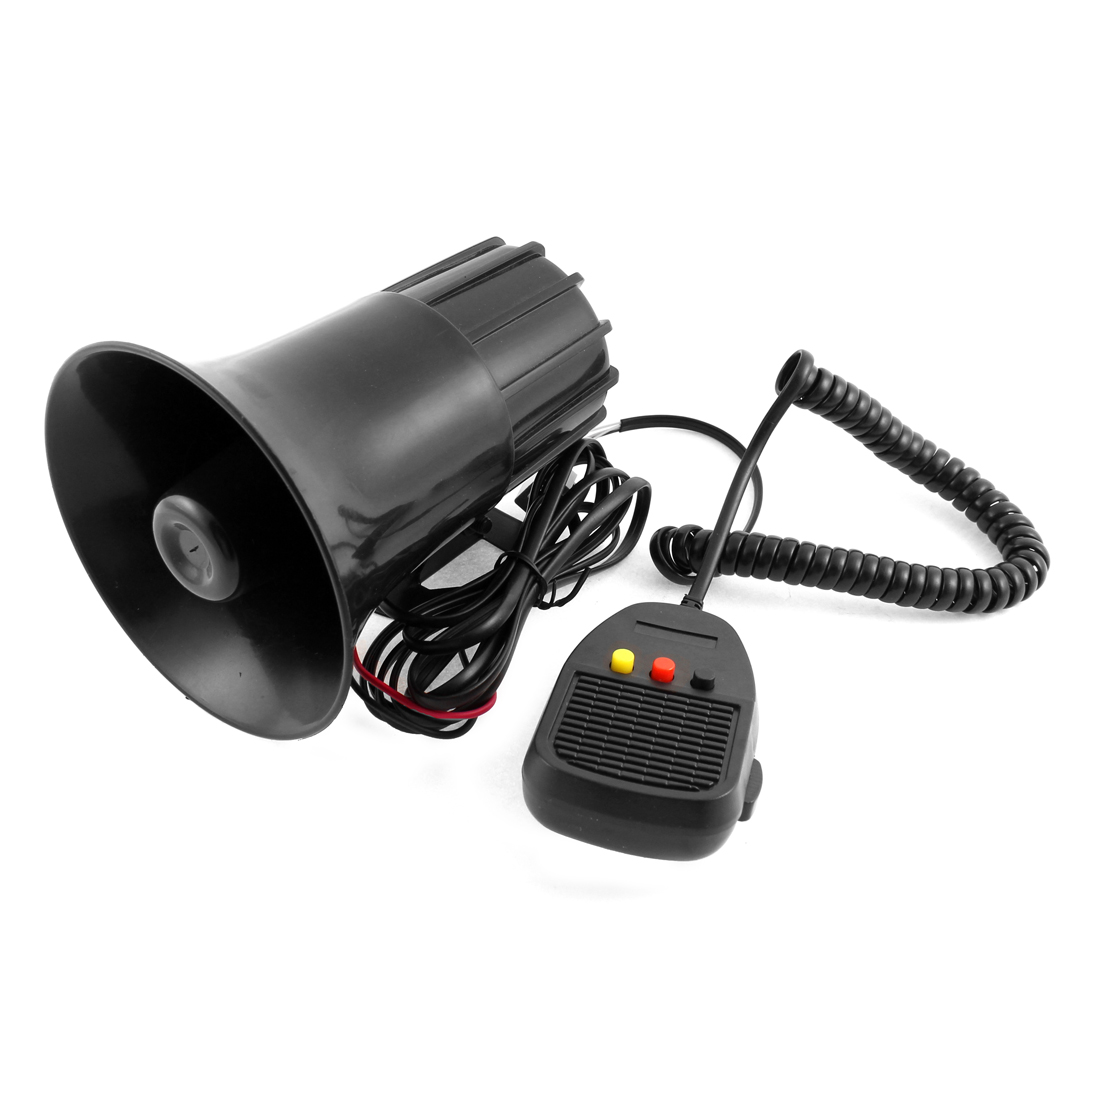 DC 12V 3 Tone Black Plastic Motorcycle Speaker Warn Loud Horn Trumpet